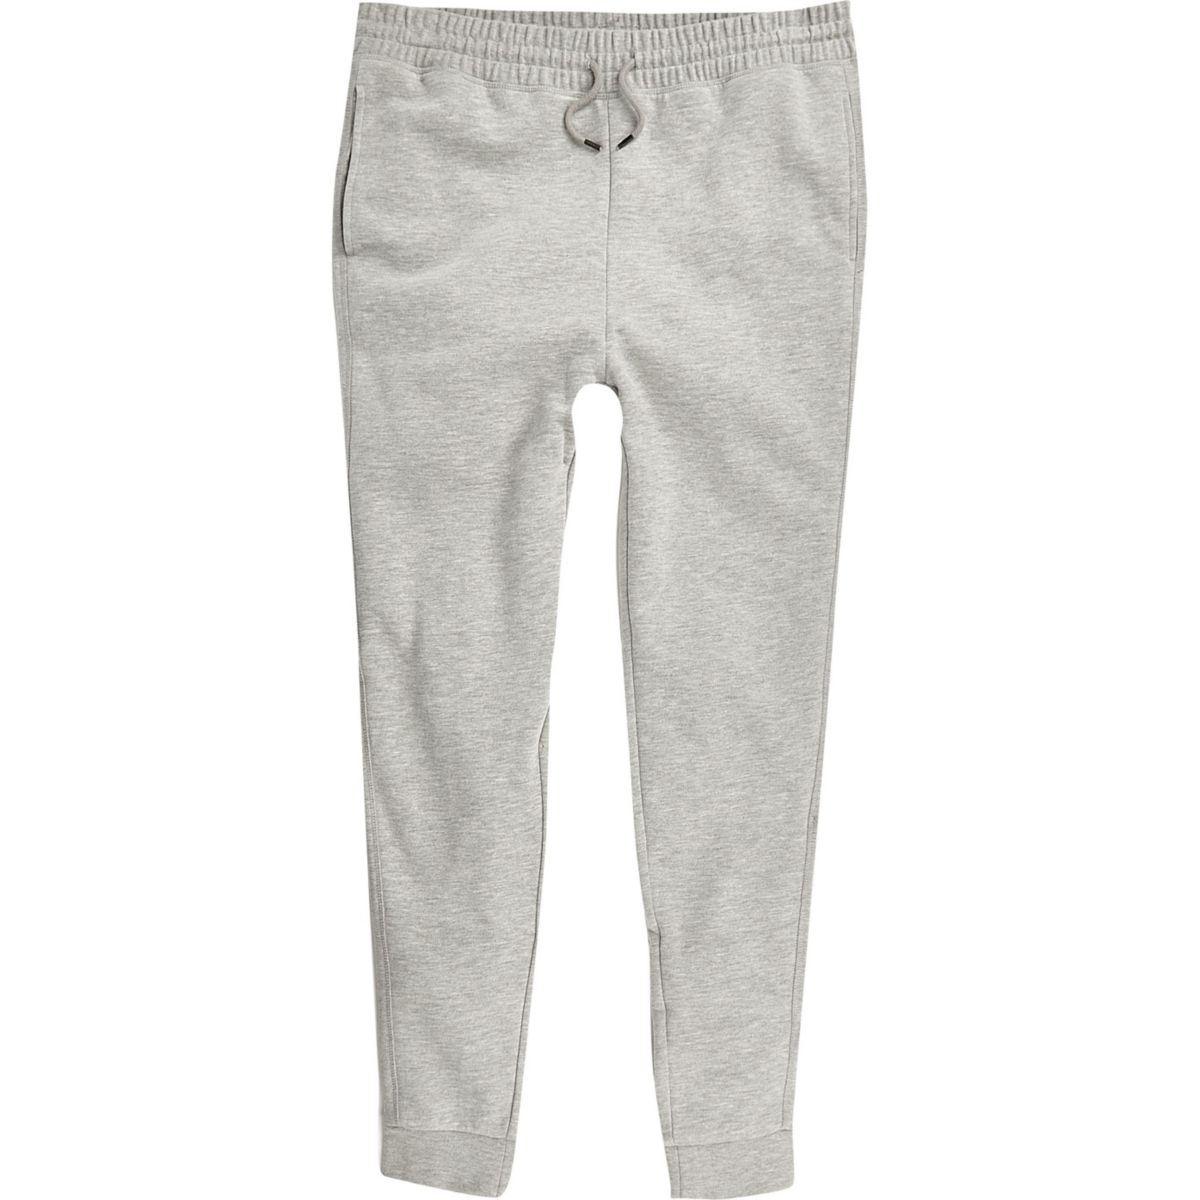 Pantalon de jogging Big & Tall gris chiné